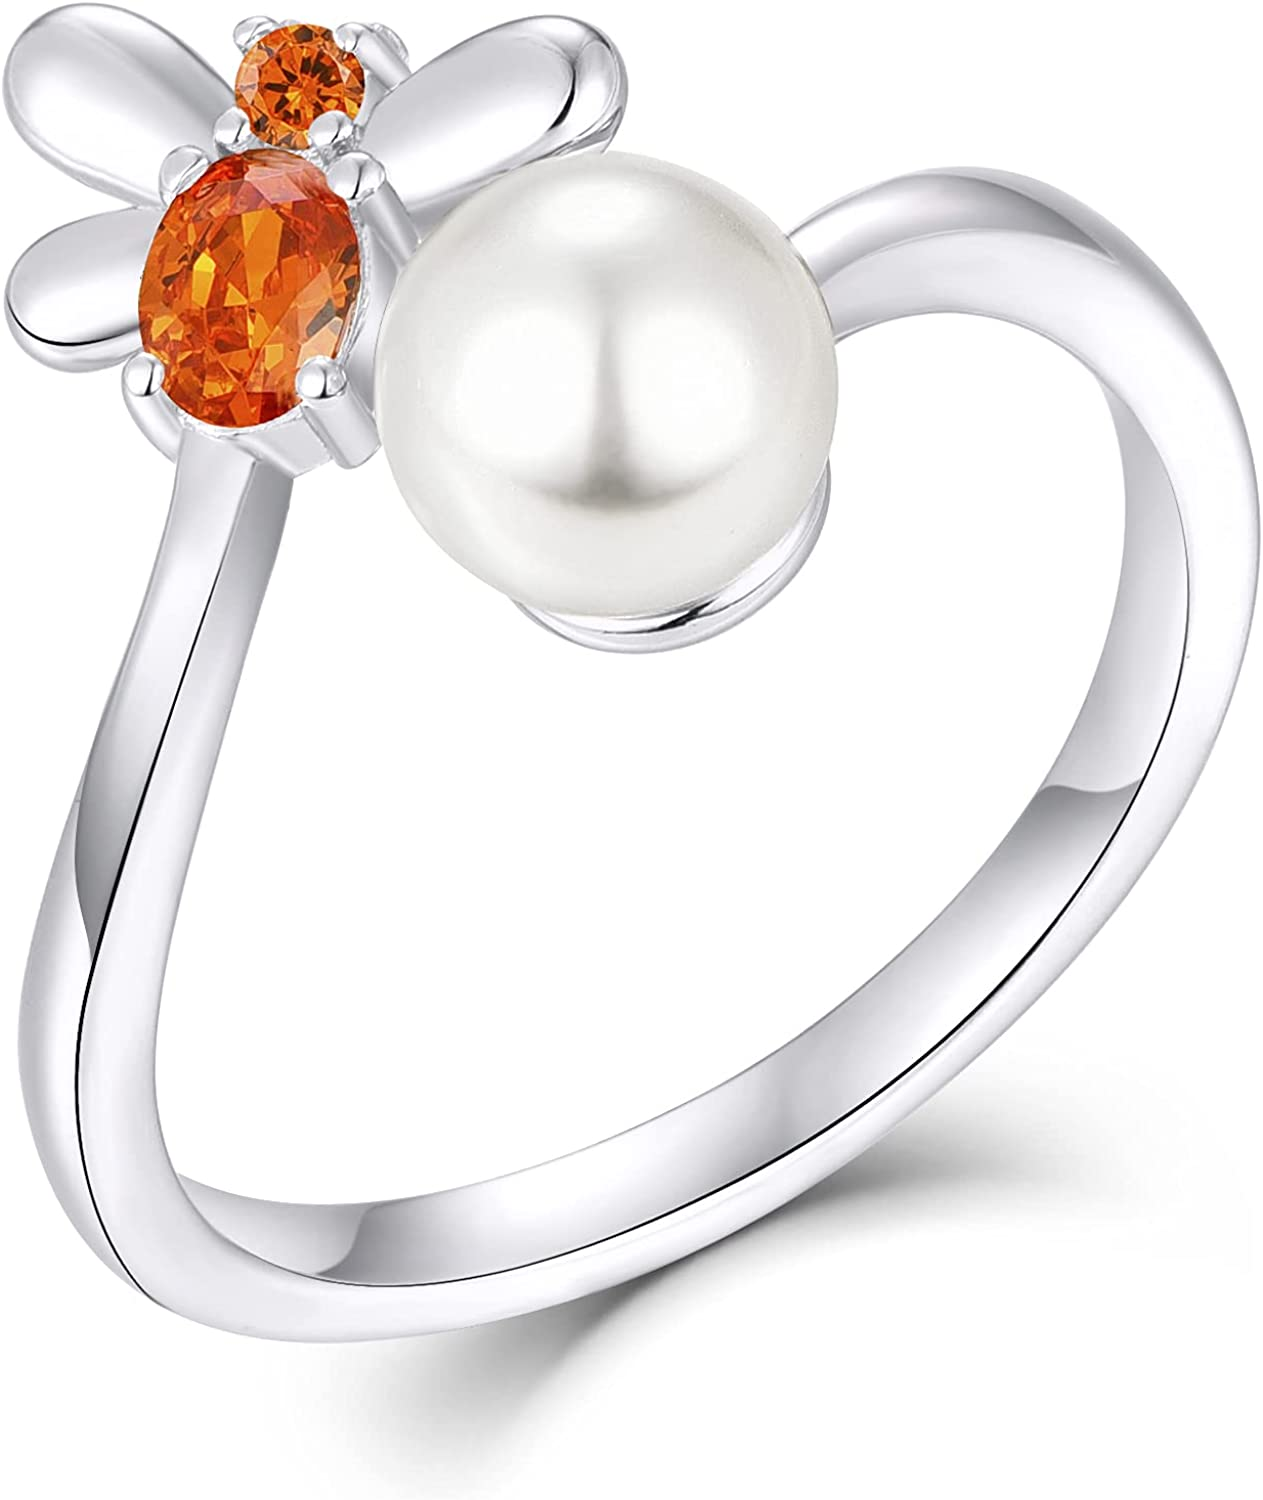 FJ Women 6MM Pearl Bee Ring Sterling 925 Open OFFicial mail New sales order Animal Silver